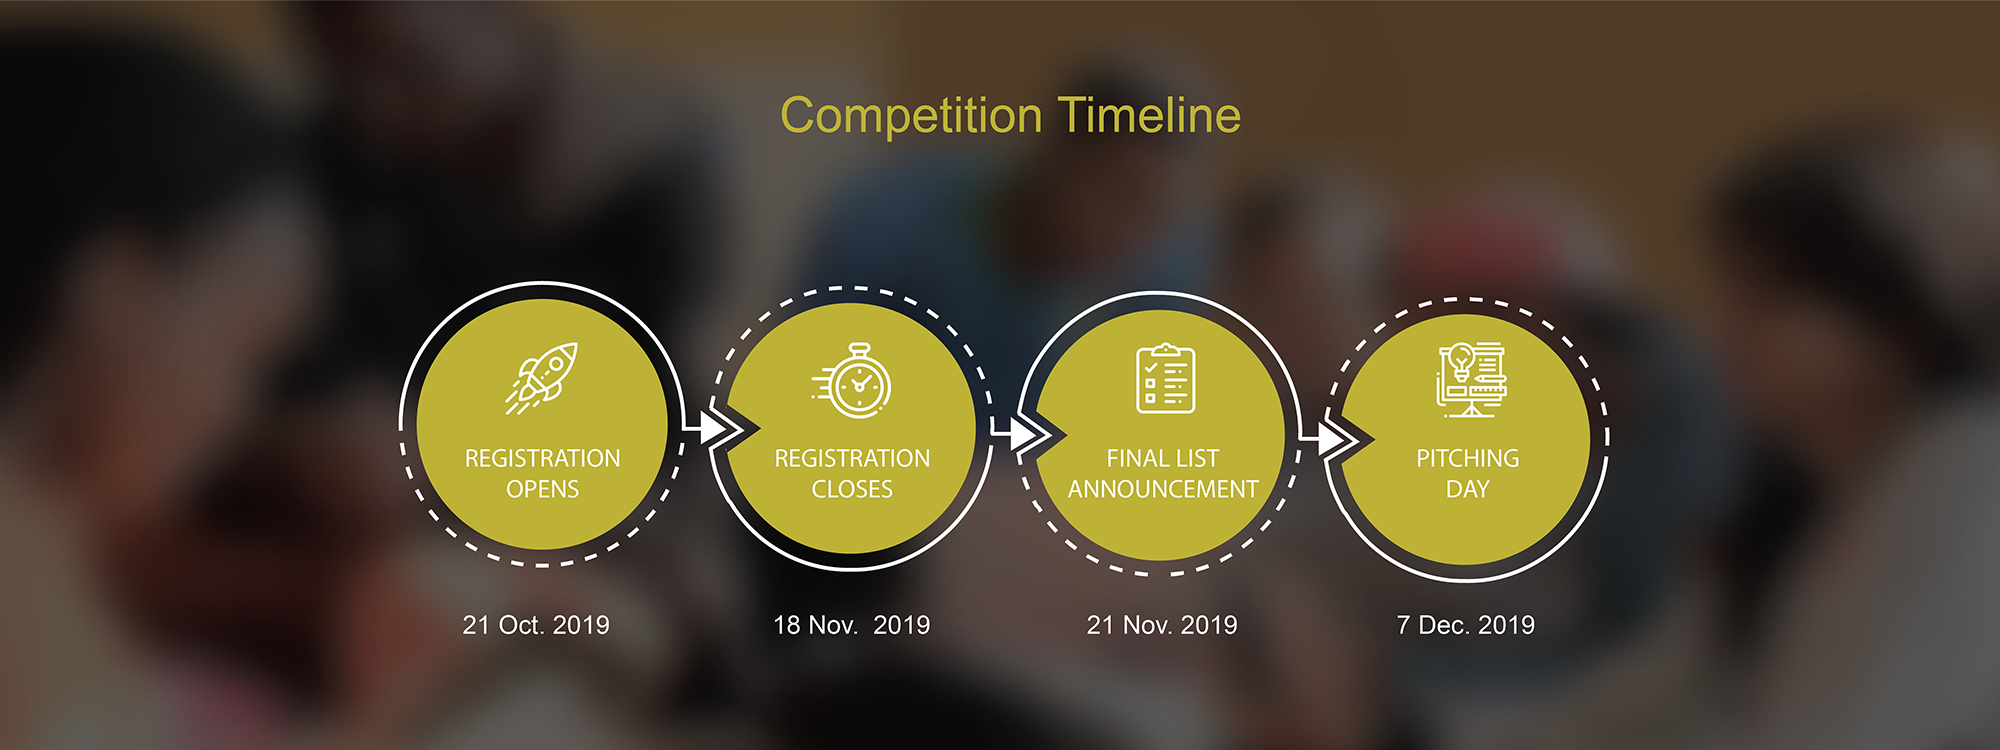 AAL Cup Competition Timeline includes 4 stages: - Registration opens – Registration Closes - Final List Announcement – Pitching Day